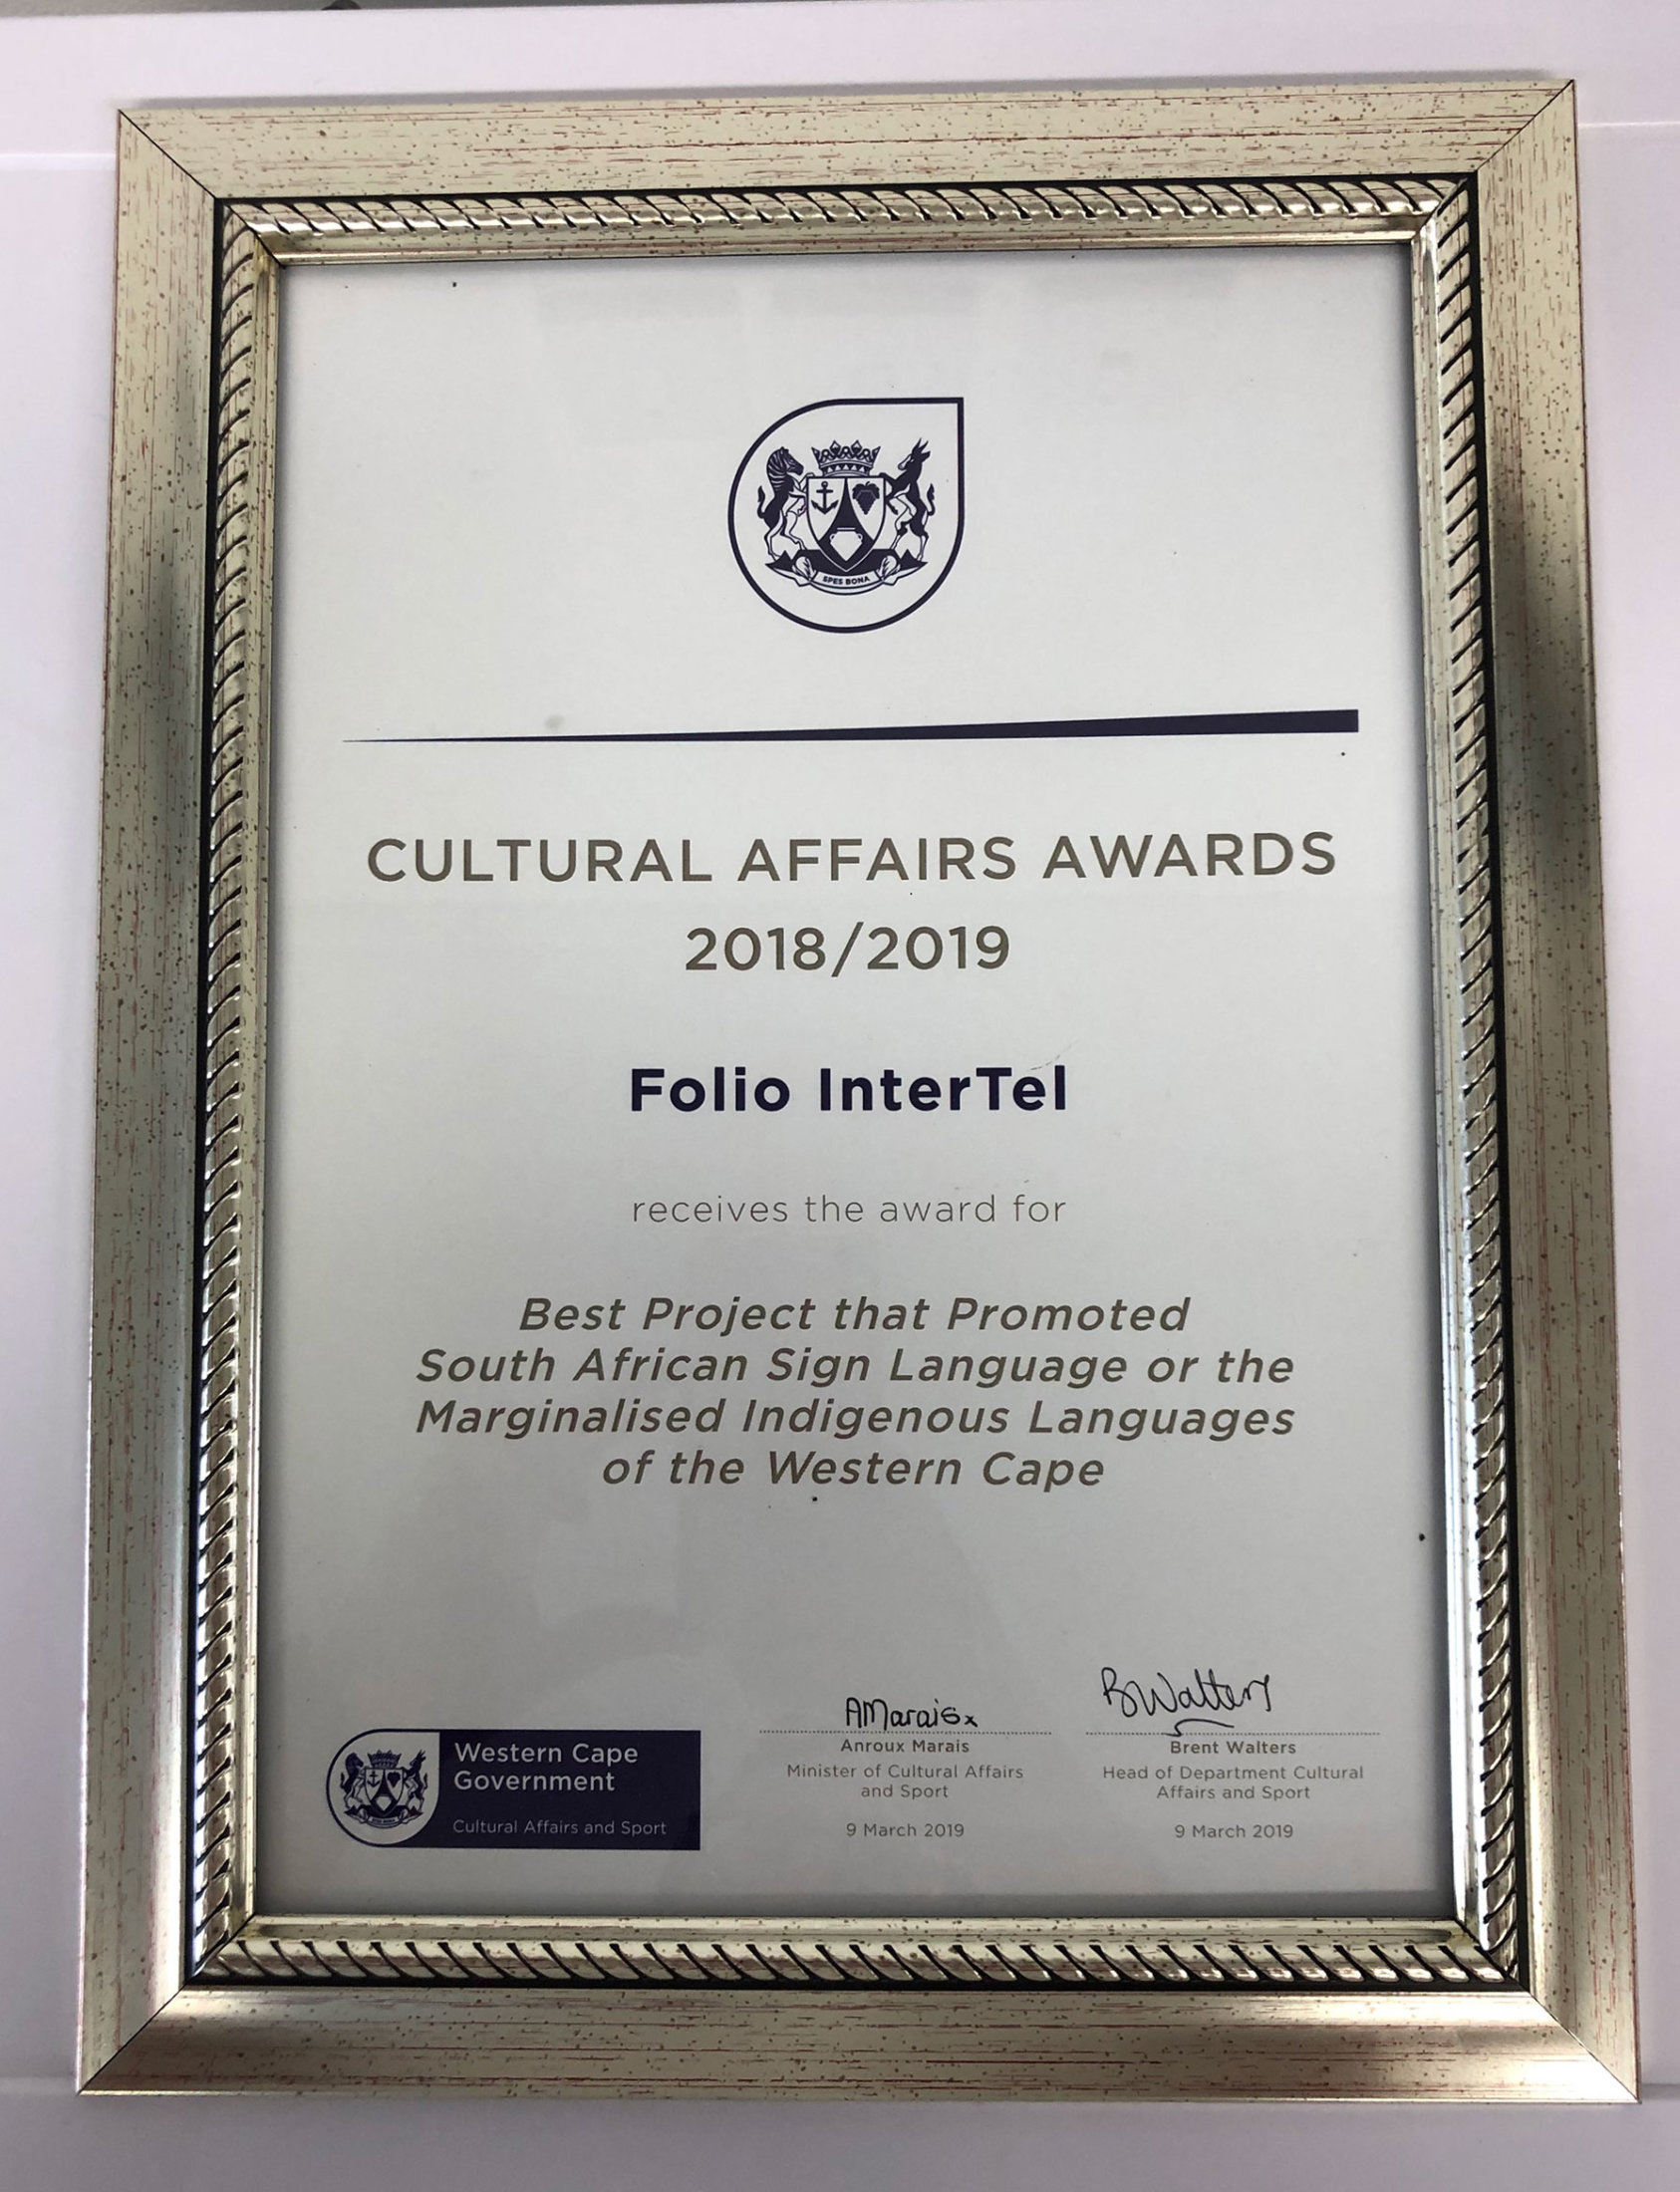 Folio InterTel won the Department of Arts and Culture's award for the promotion of South African Sign Language at the 18th Annual Cultural Affairs Awards at the Artscape theatre in Cape Town. This event celebrated all things cultural, from drama and dance to music, museums and interactive media. After eight years and much success, especially in the field of medicine, Folio InterTel is proud to be recognised for providing this vital service to the often neglected deaf community of the Western Cape.